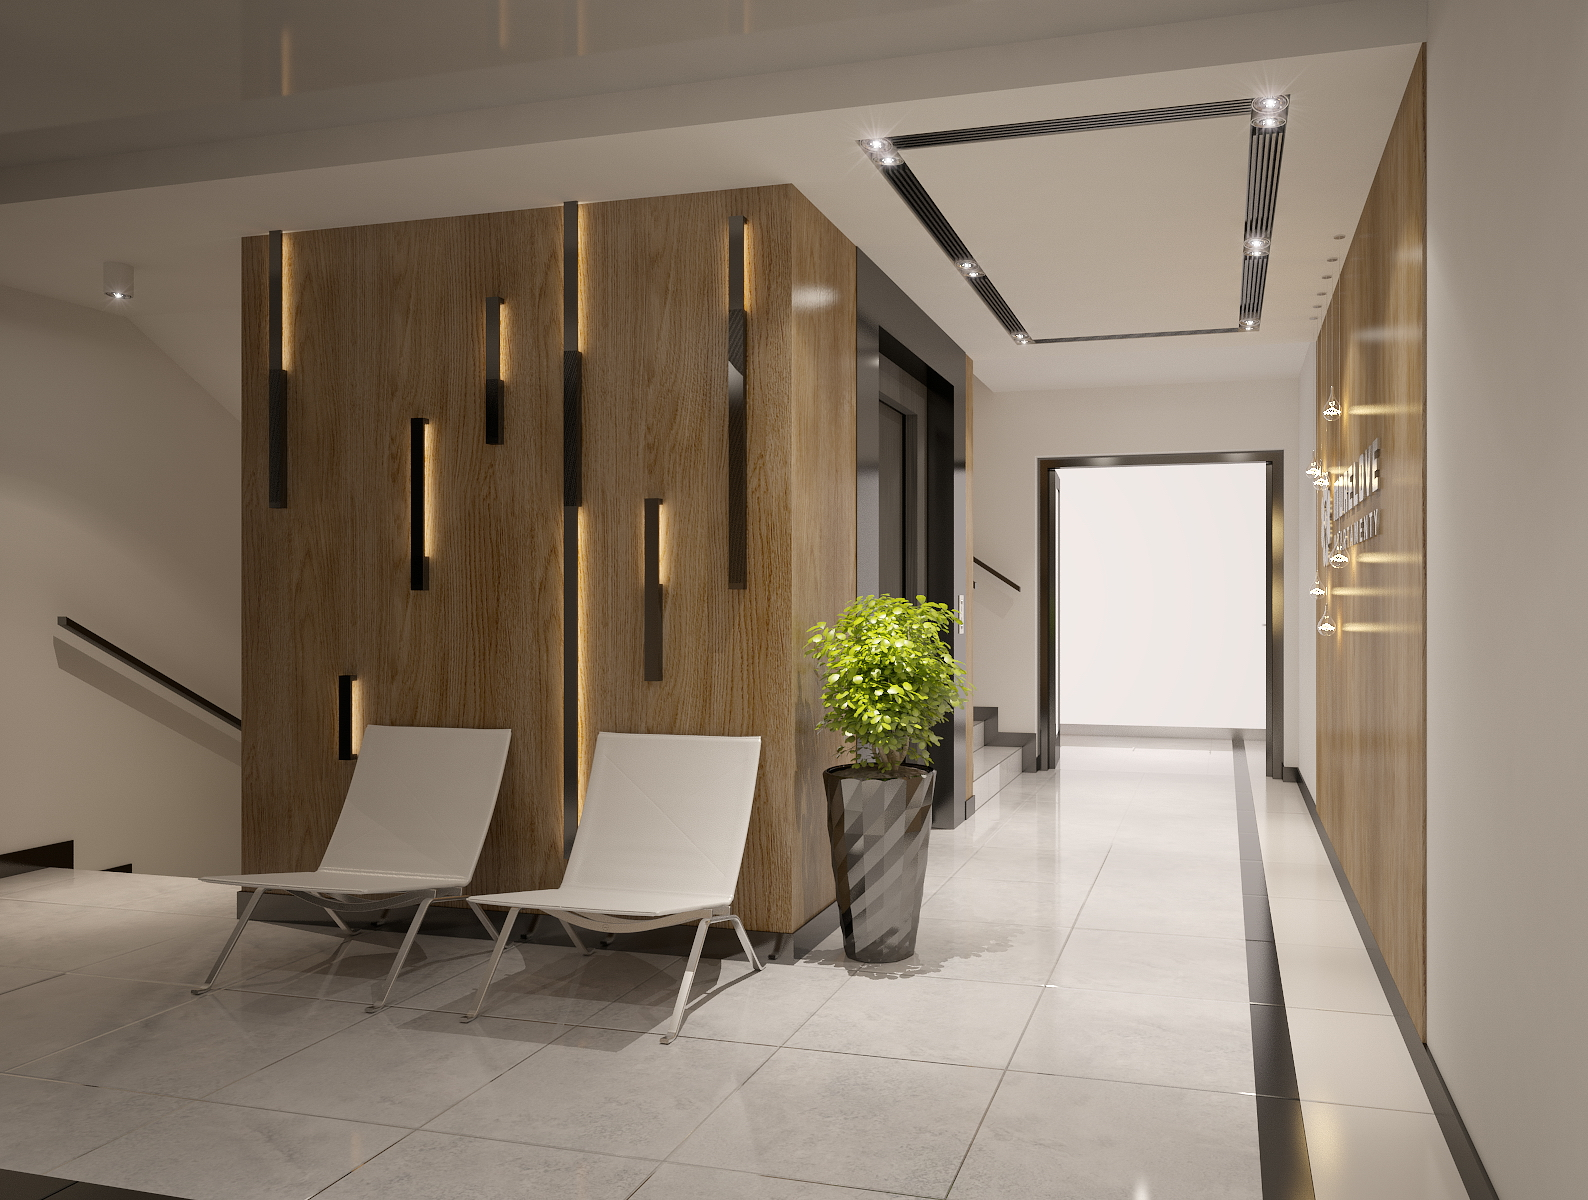 Apartments building Entrance Hall area Foyer Lobby with elevator